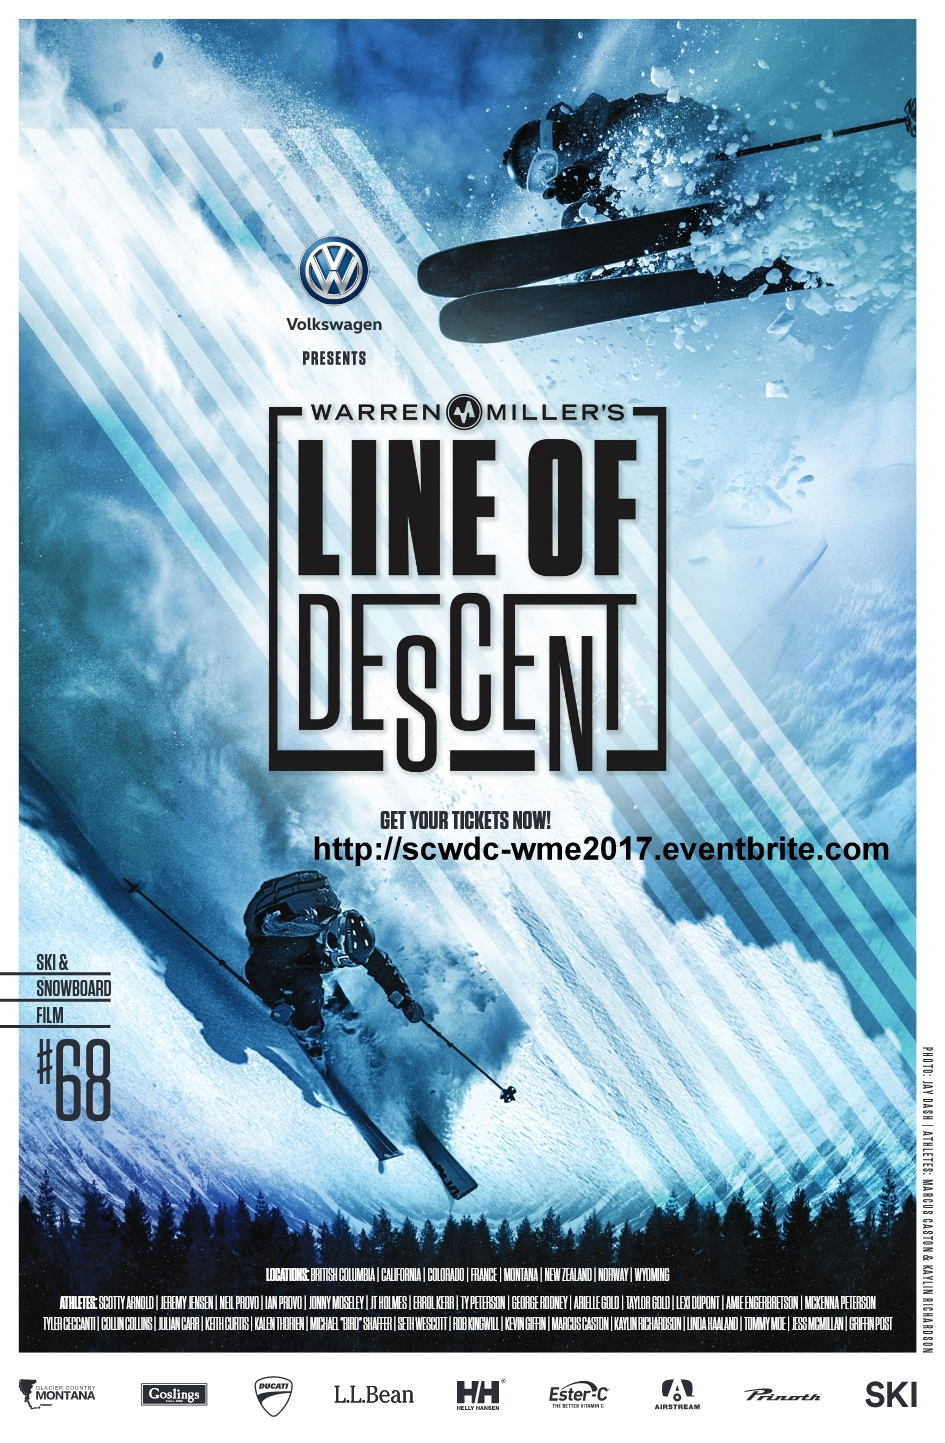 Line of Descent Poster